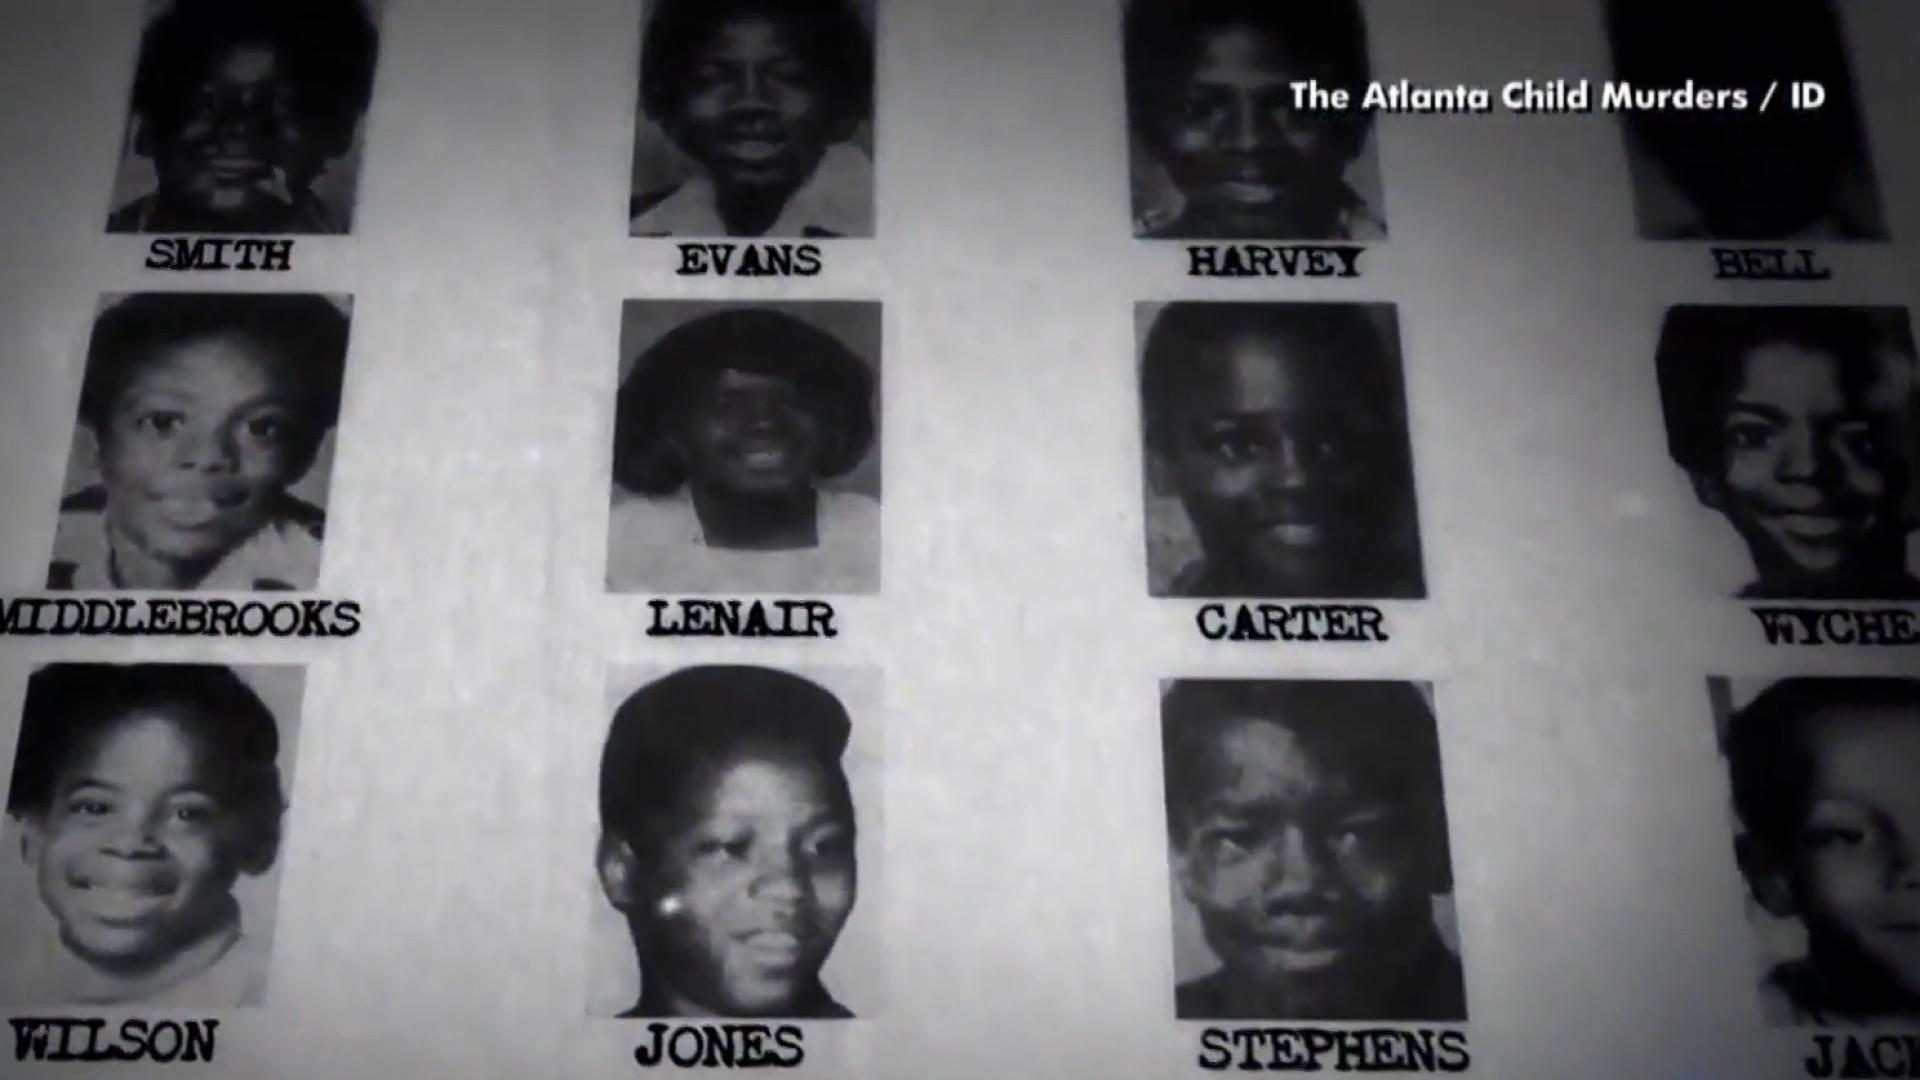 Officials announce new review of evidence in Atlanta's infamous child murders